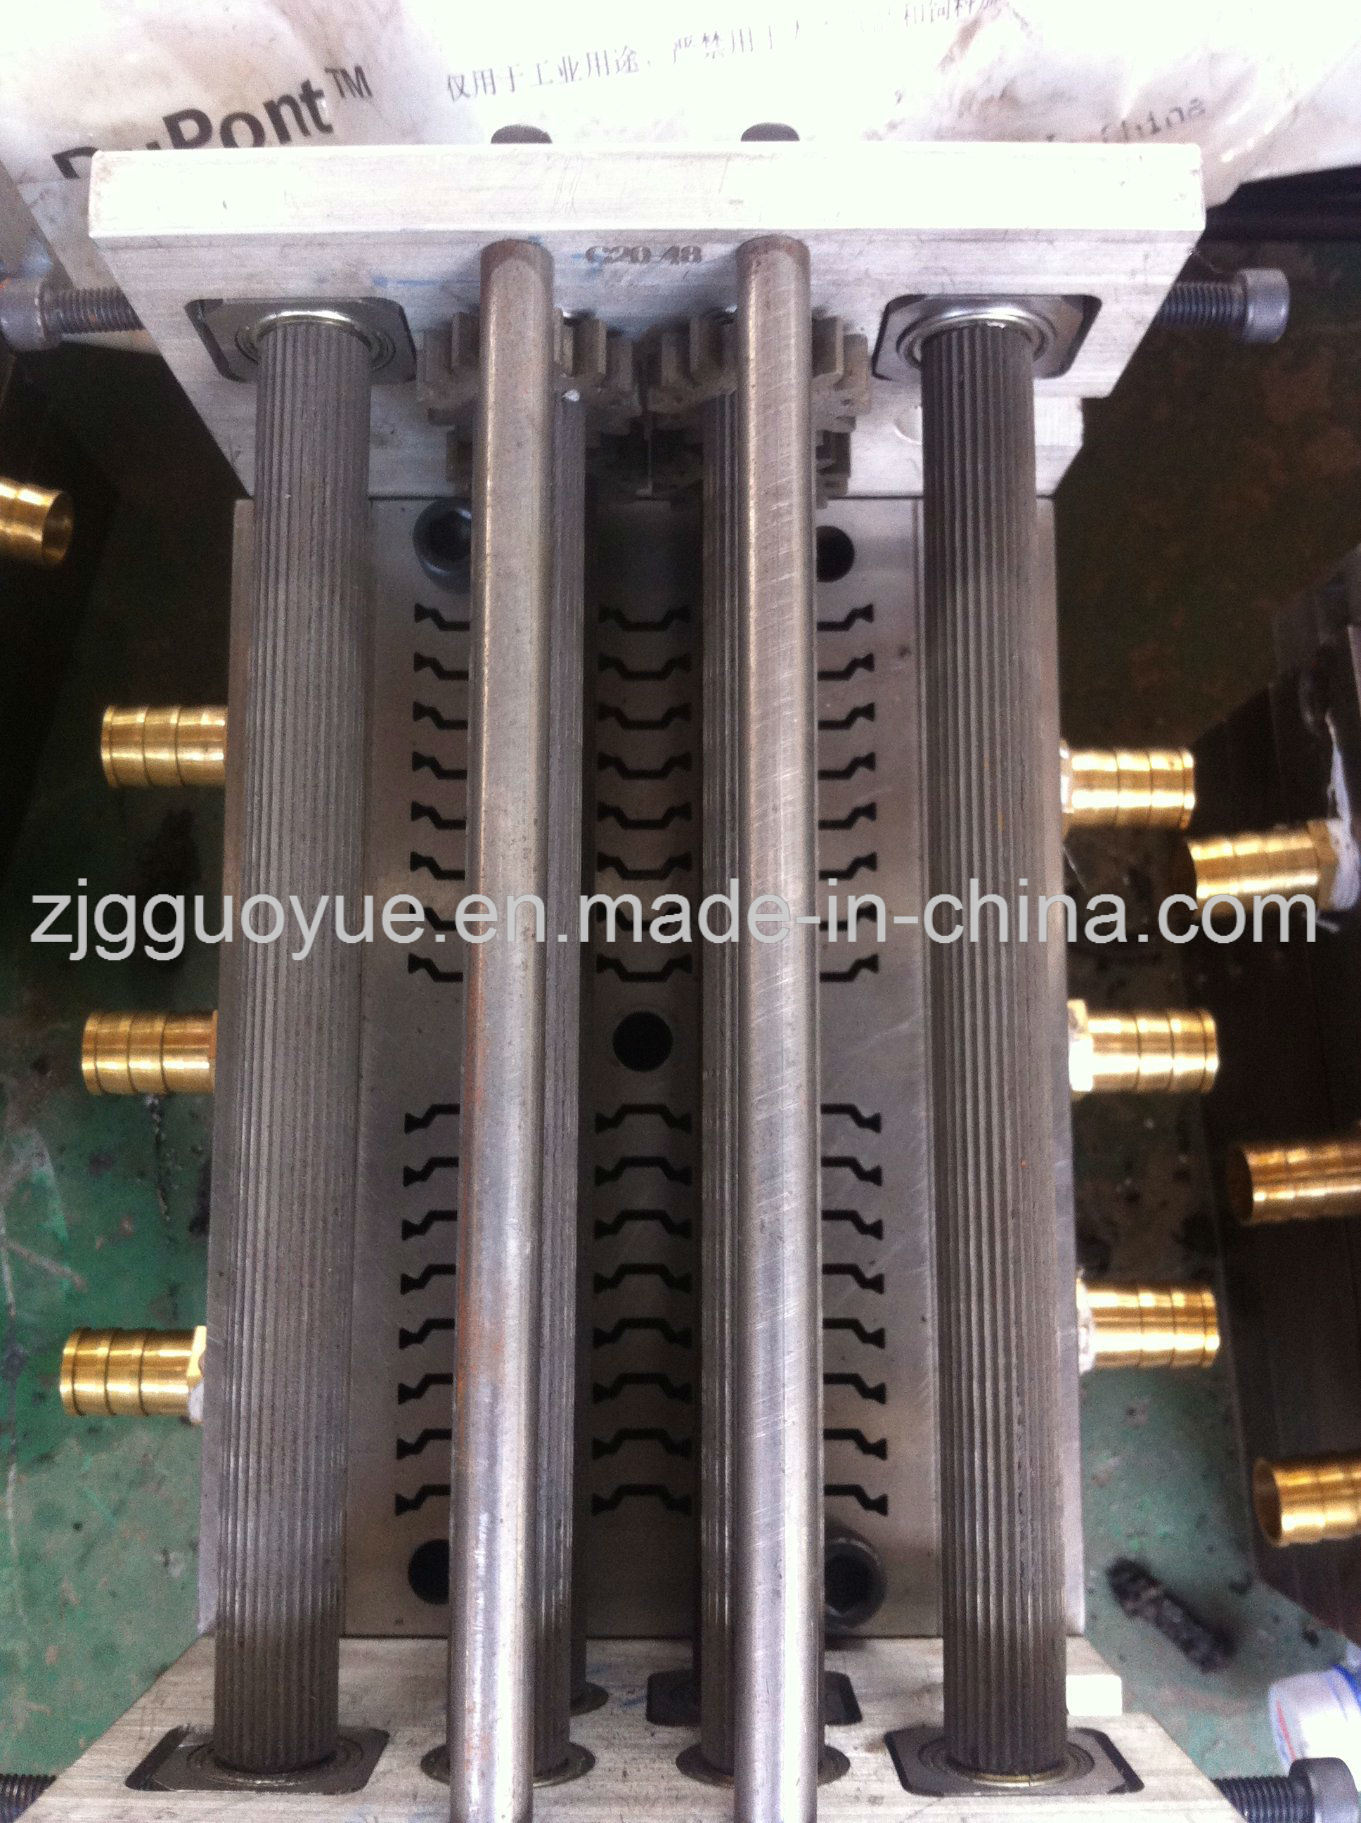 Polyamide Strips Extruder for Thermal Barrier Aluminum